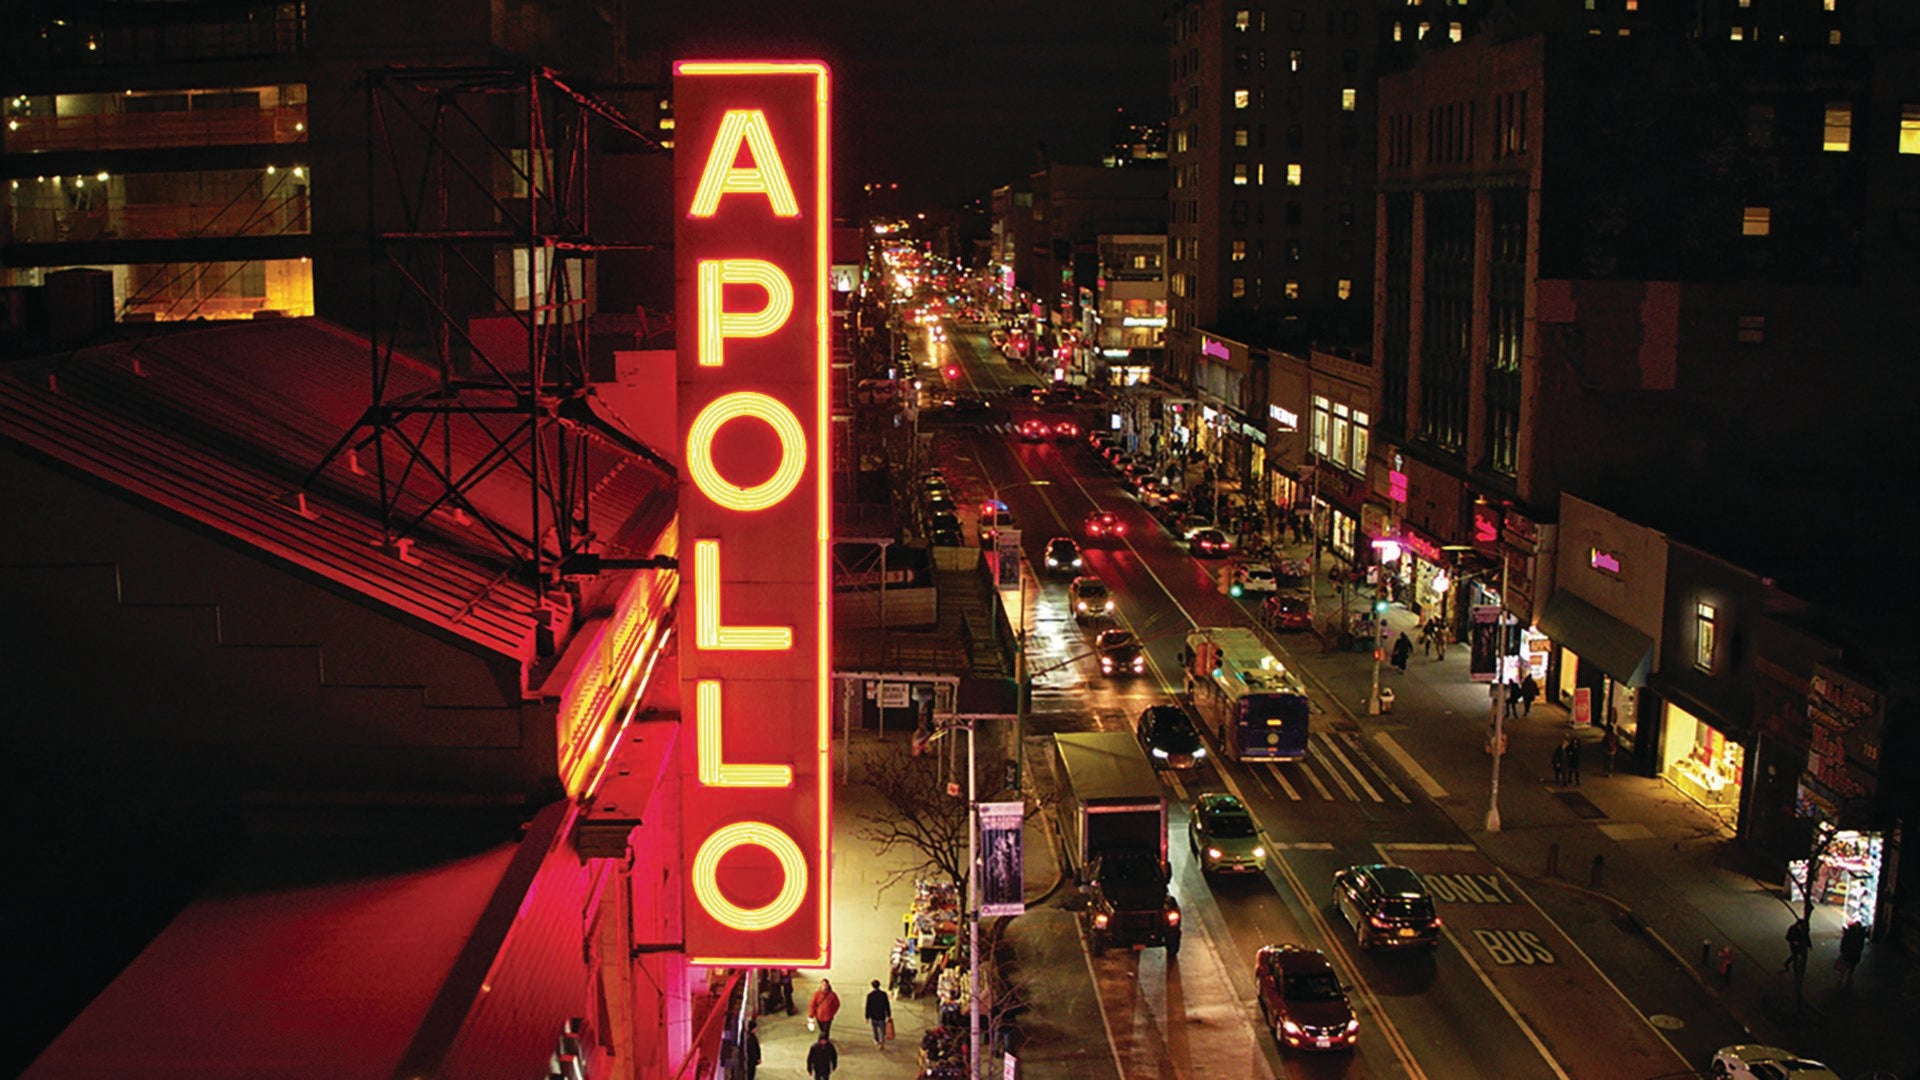 'The Apollo' Reminds Us Of Our Black History Way Above Broadway